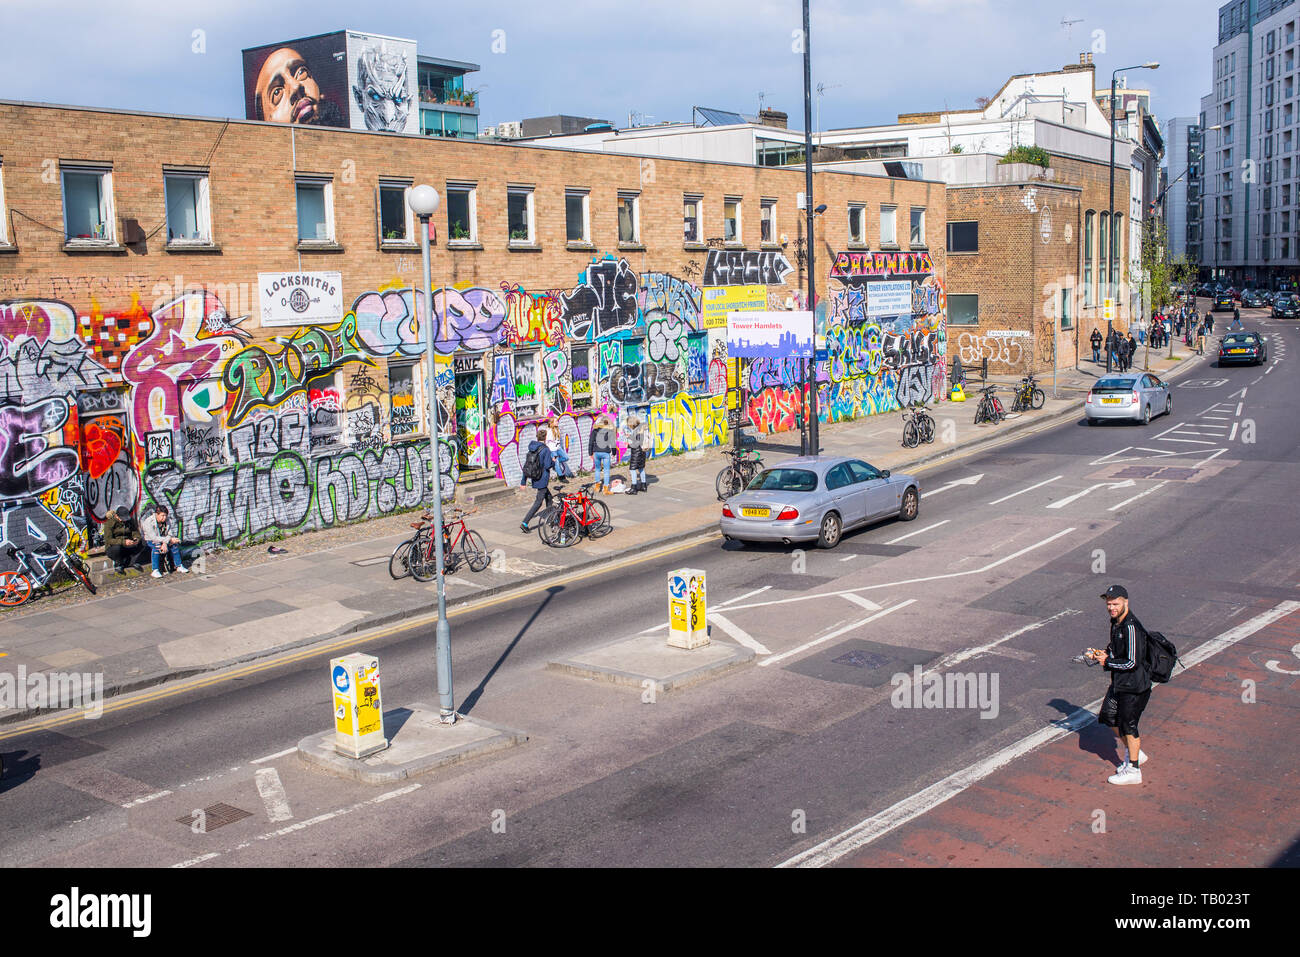 Shoreditch, London, England, UK - April 2019: Hipster man crossing the road on Bethnal Green Road near Shoreditch high street station and BOXPARK - Stock Image